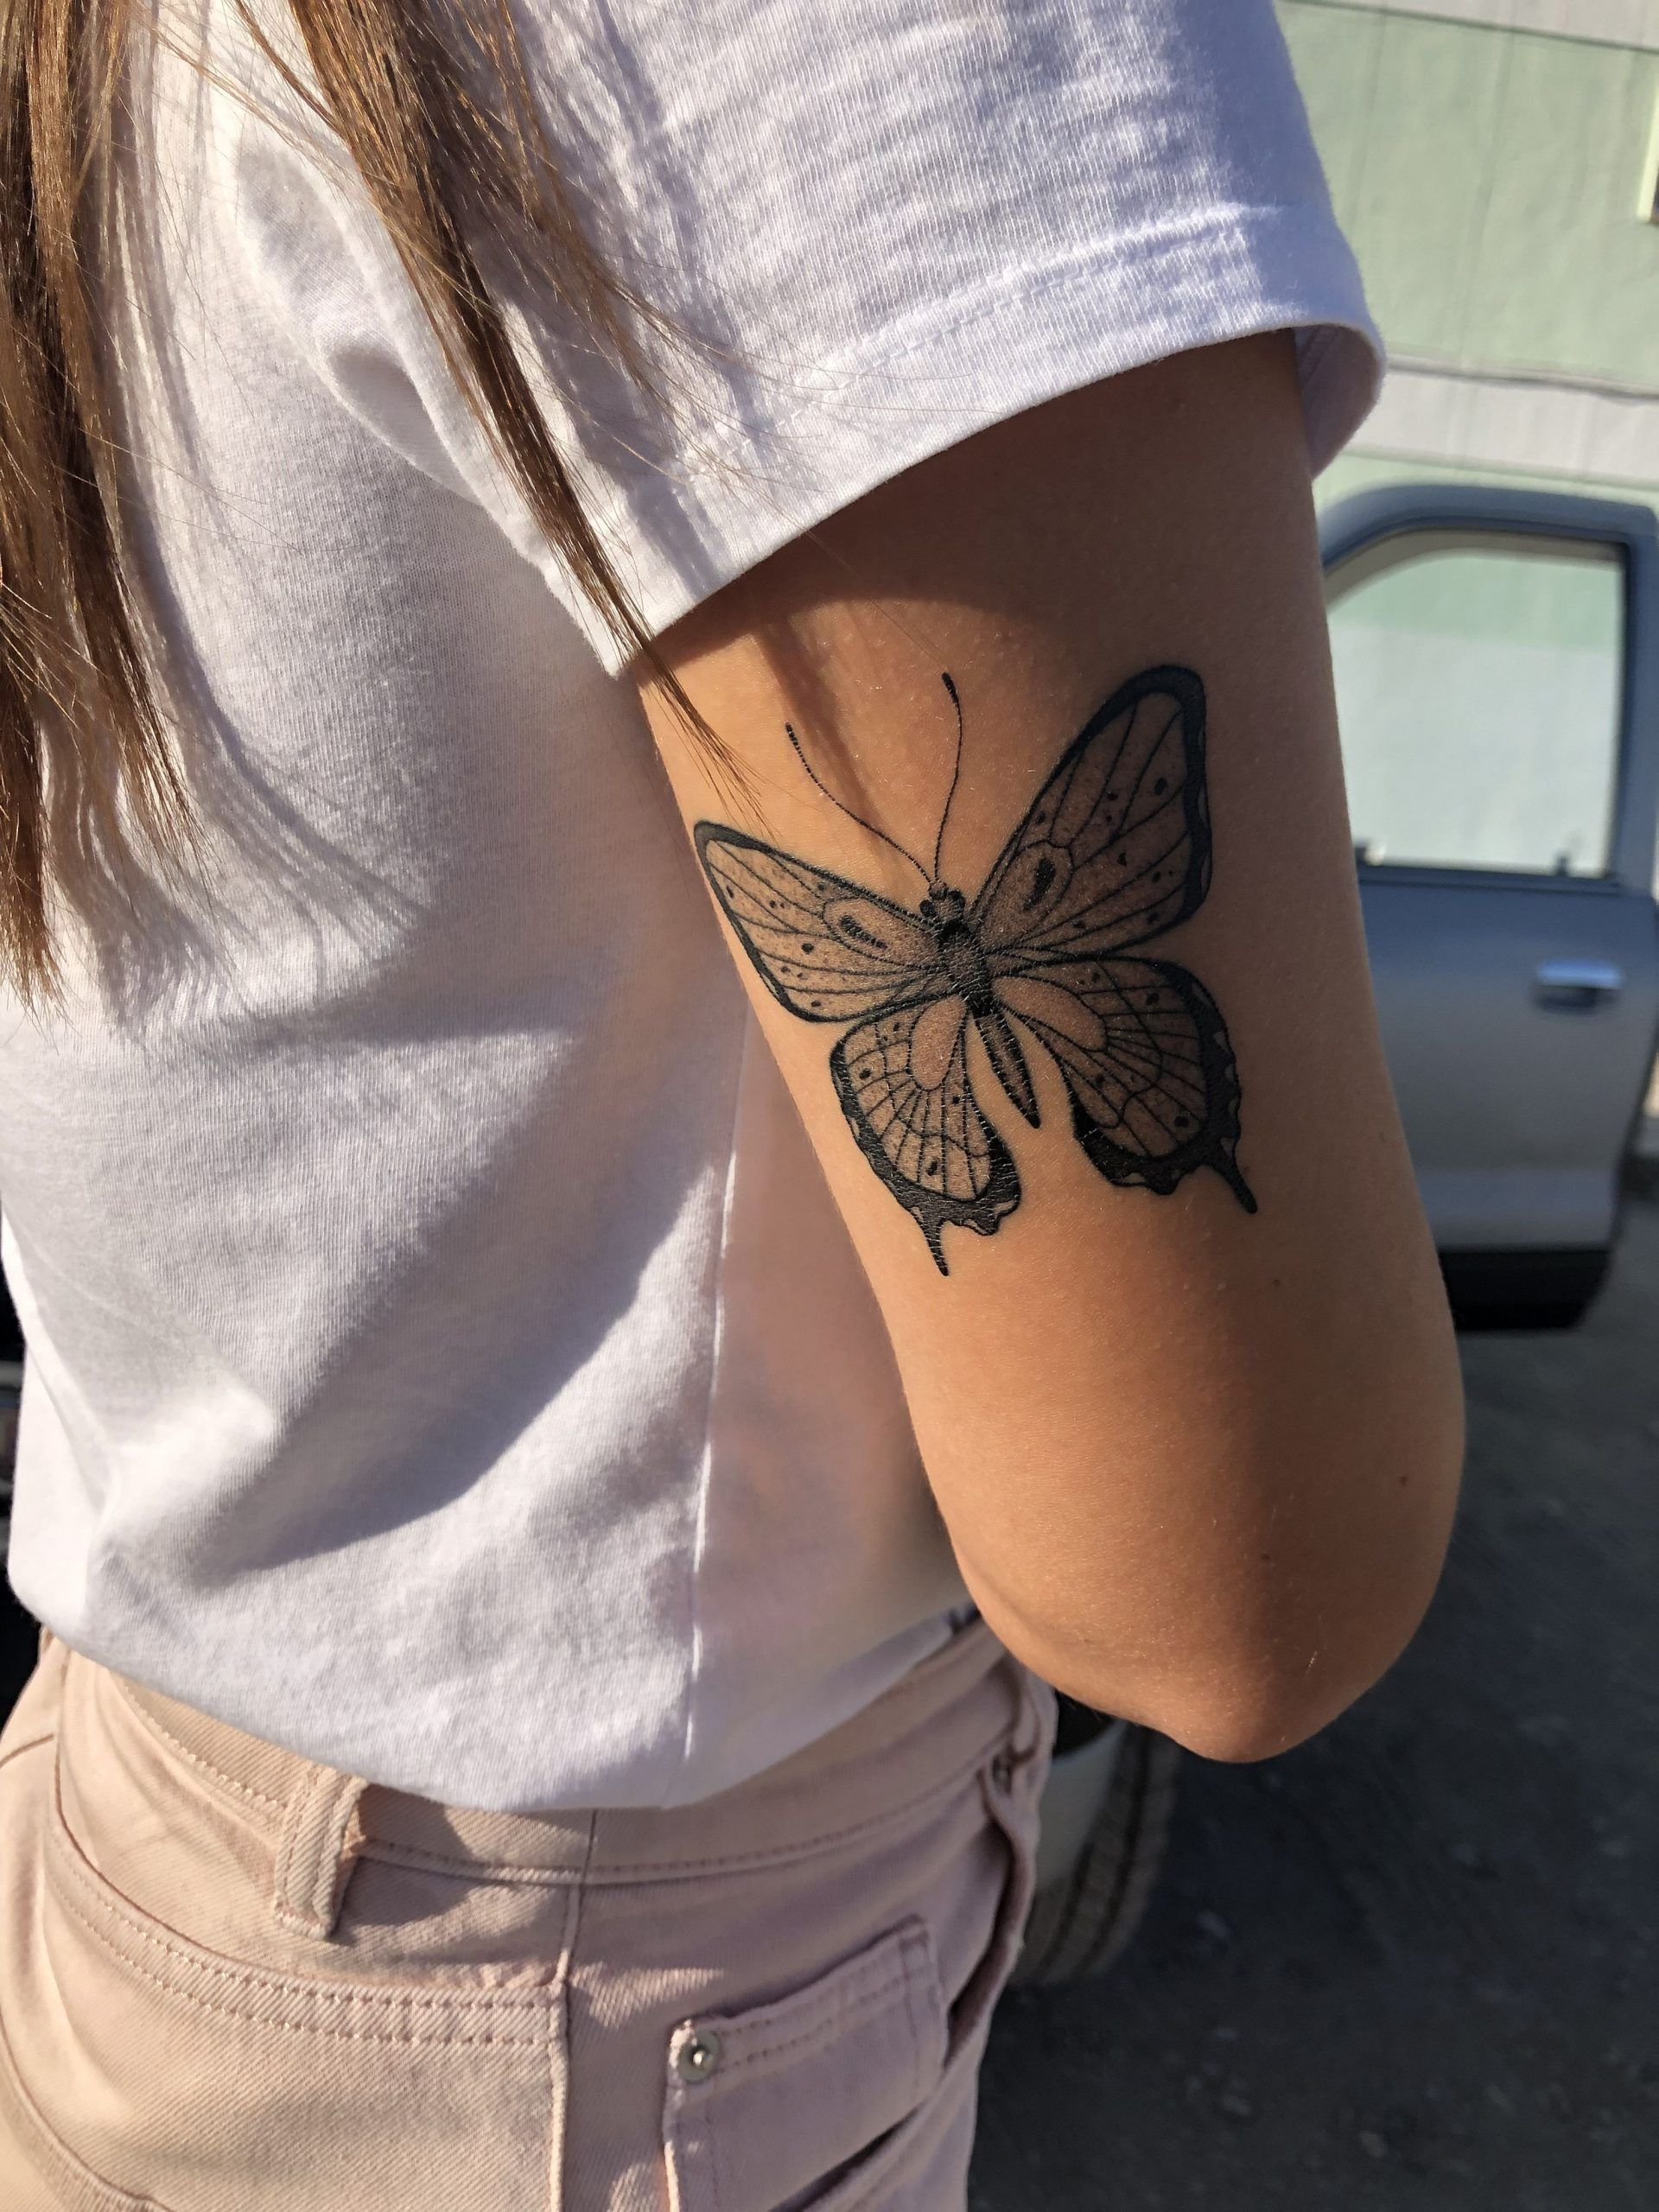 Photo of ❤️ – – #butterflytattoo #firsttattooideas #girltattoo #girltattooideas